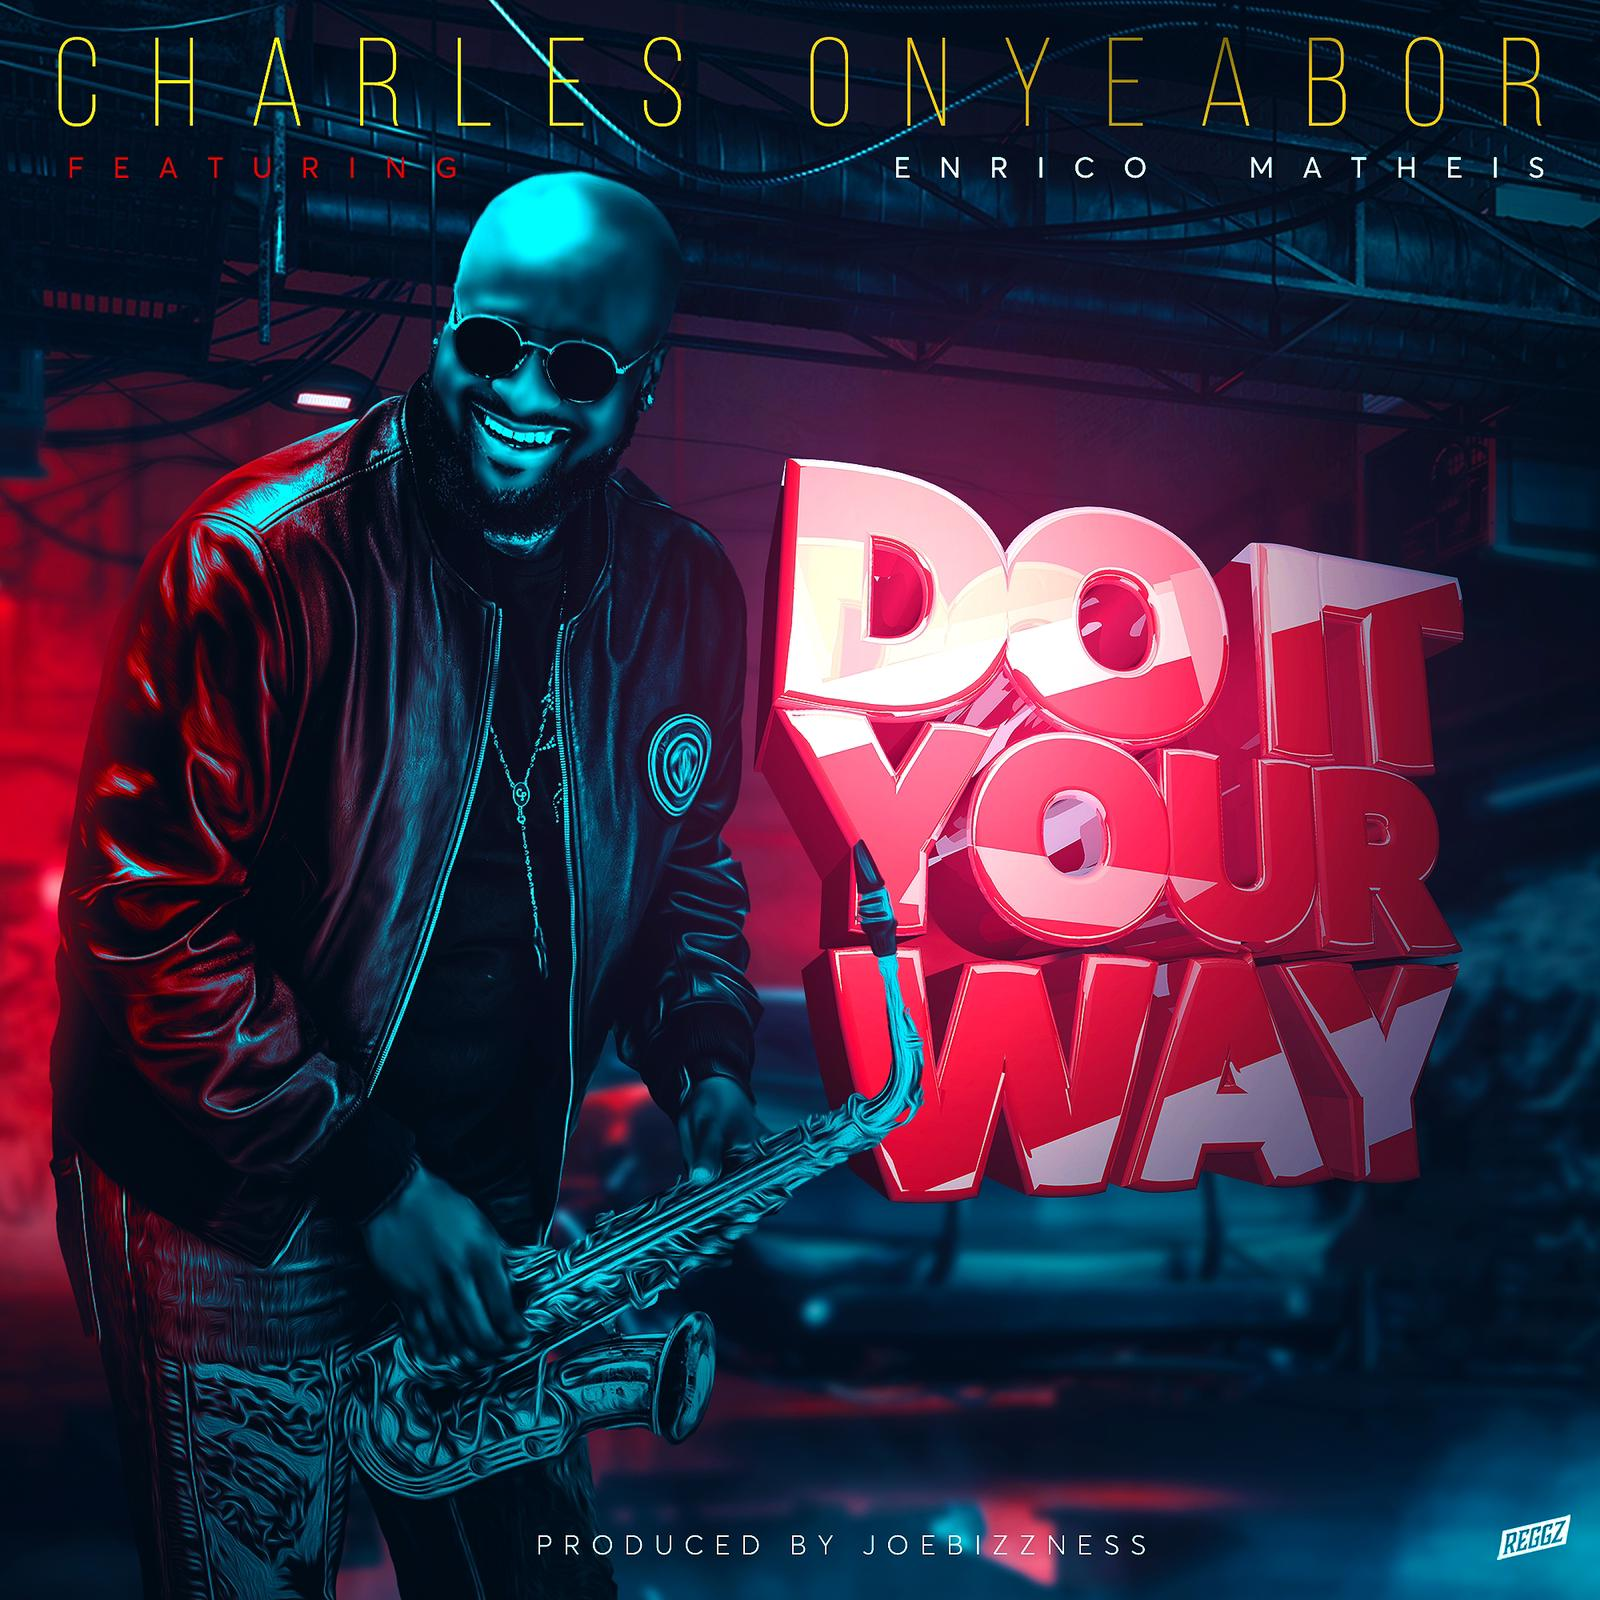 """Charles Onyeabor il nuovo singolo """"Do it your way"""" feat. Enrico Matheis (Evry)"""